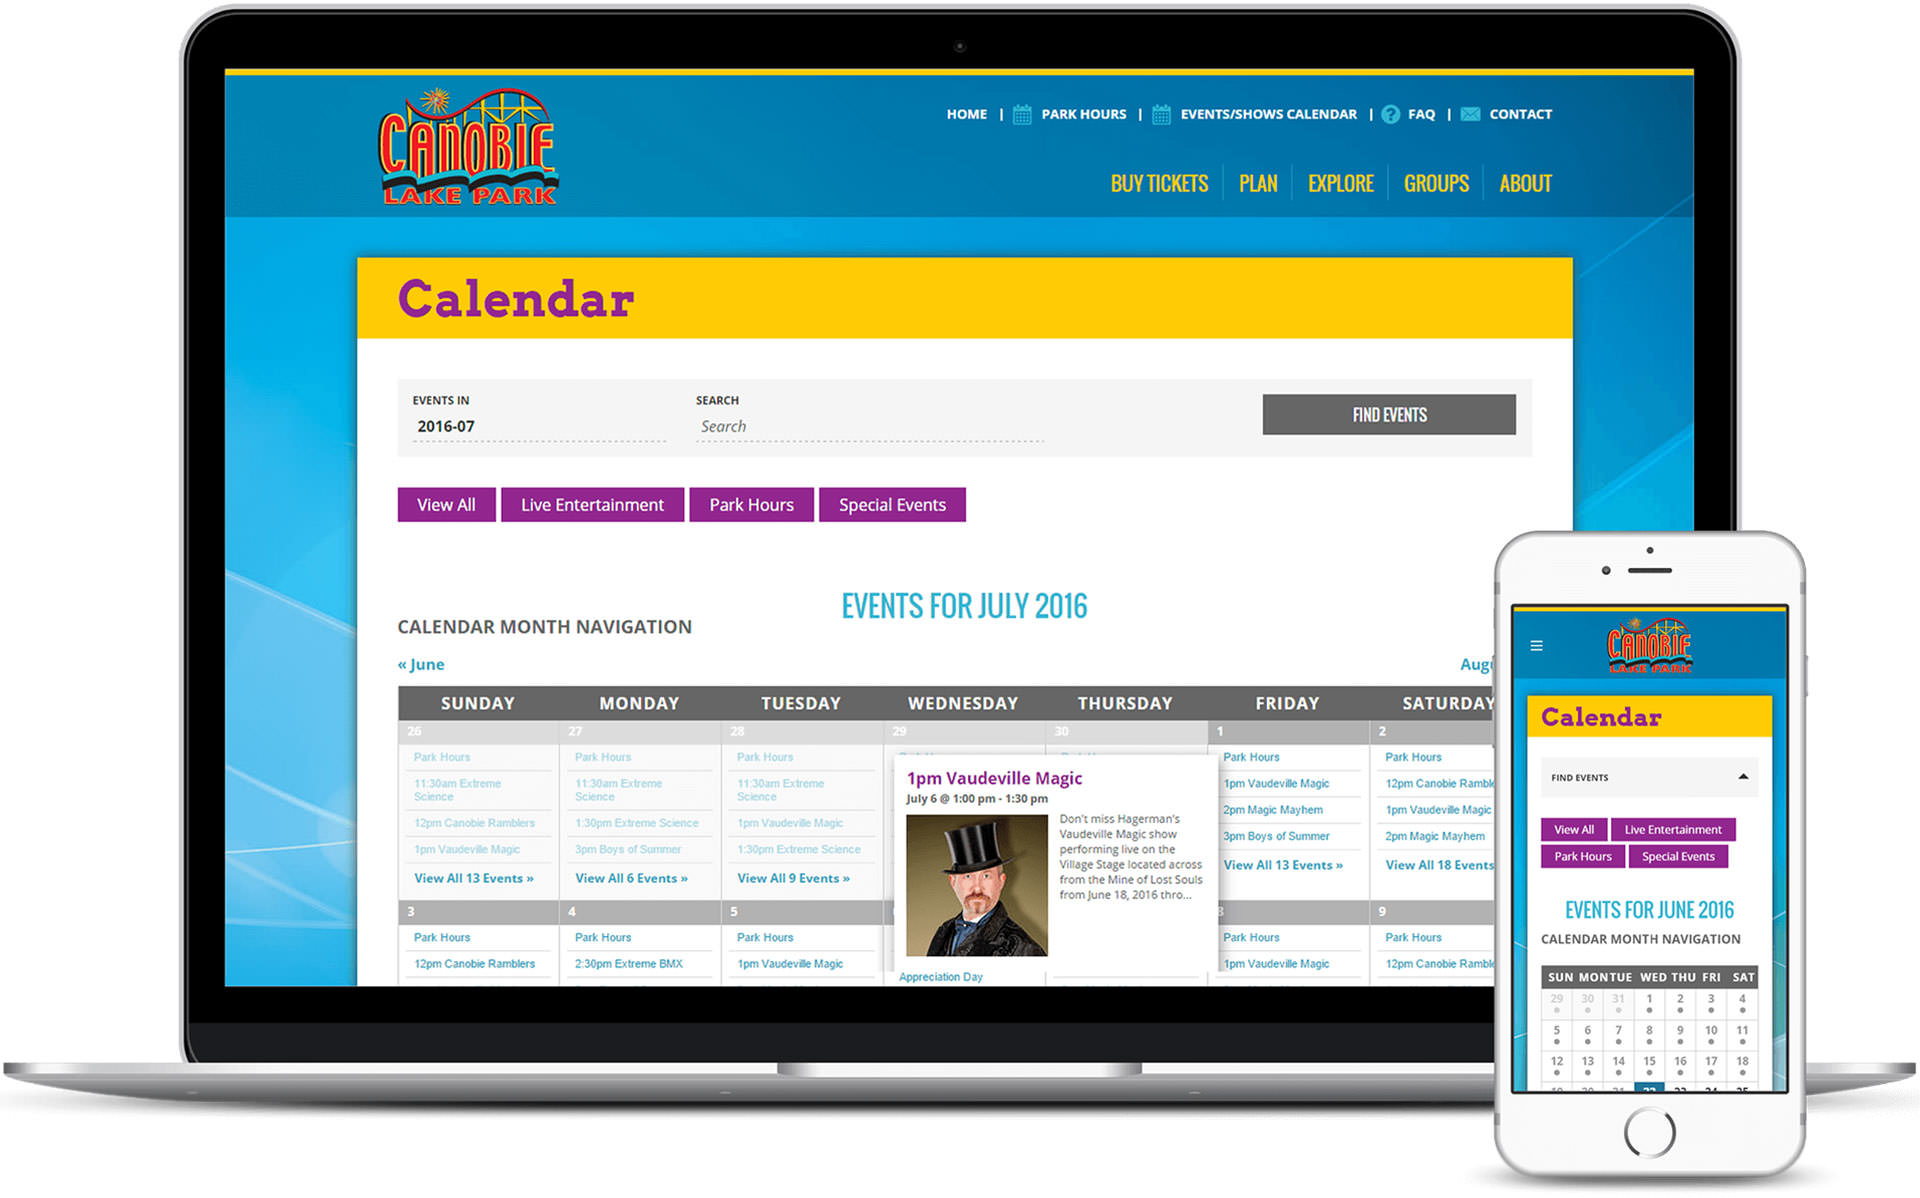 Events Calendar for Canobie Lake Park on laptop and phone